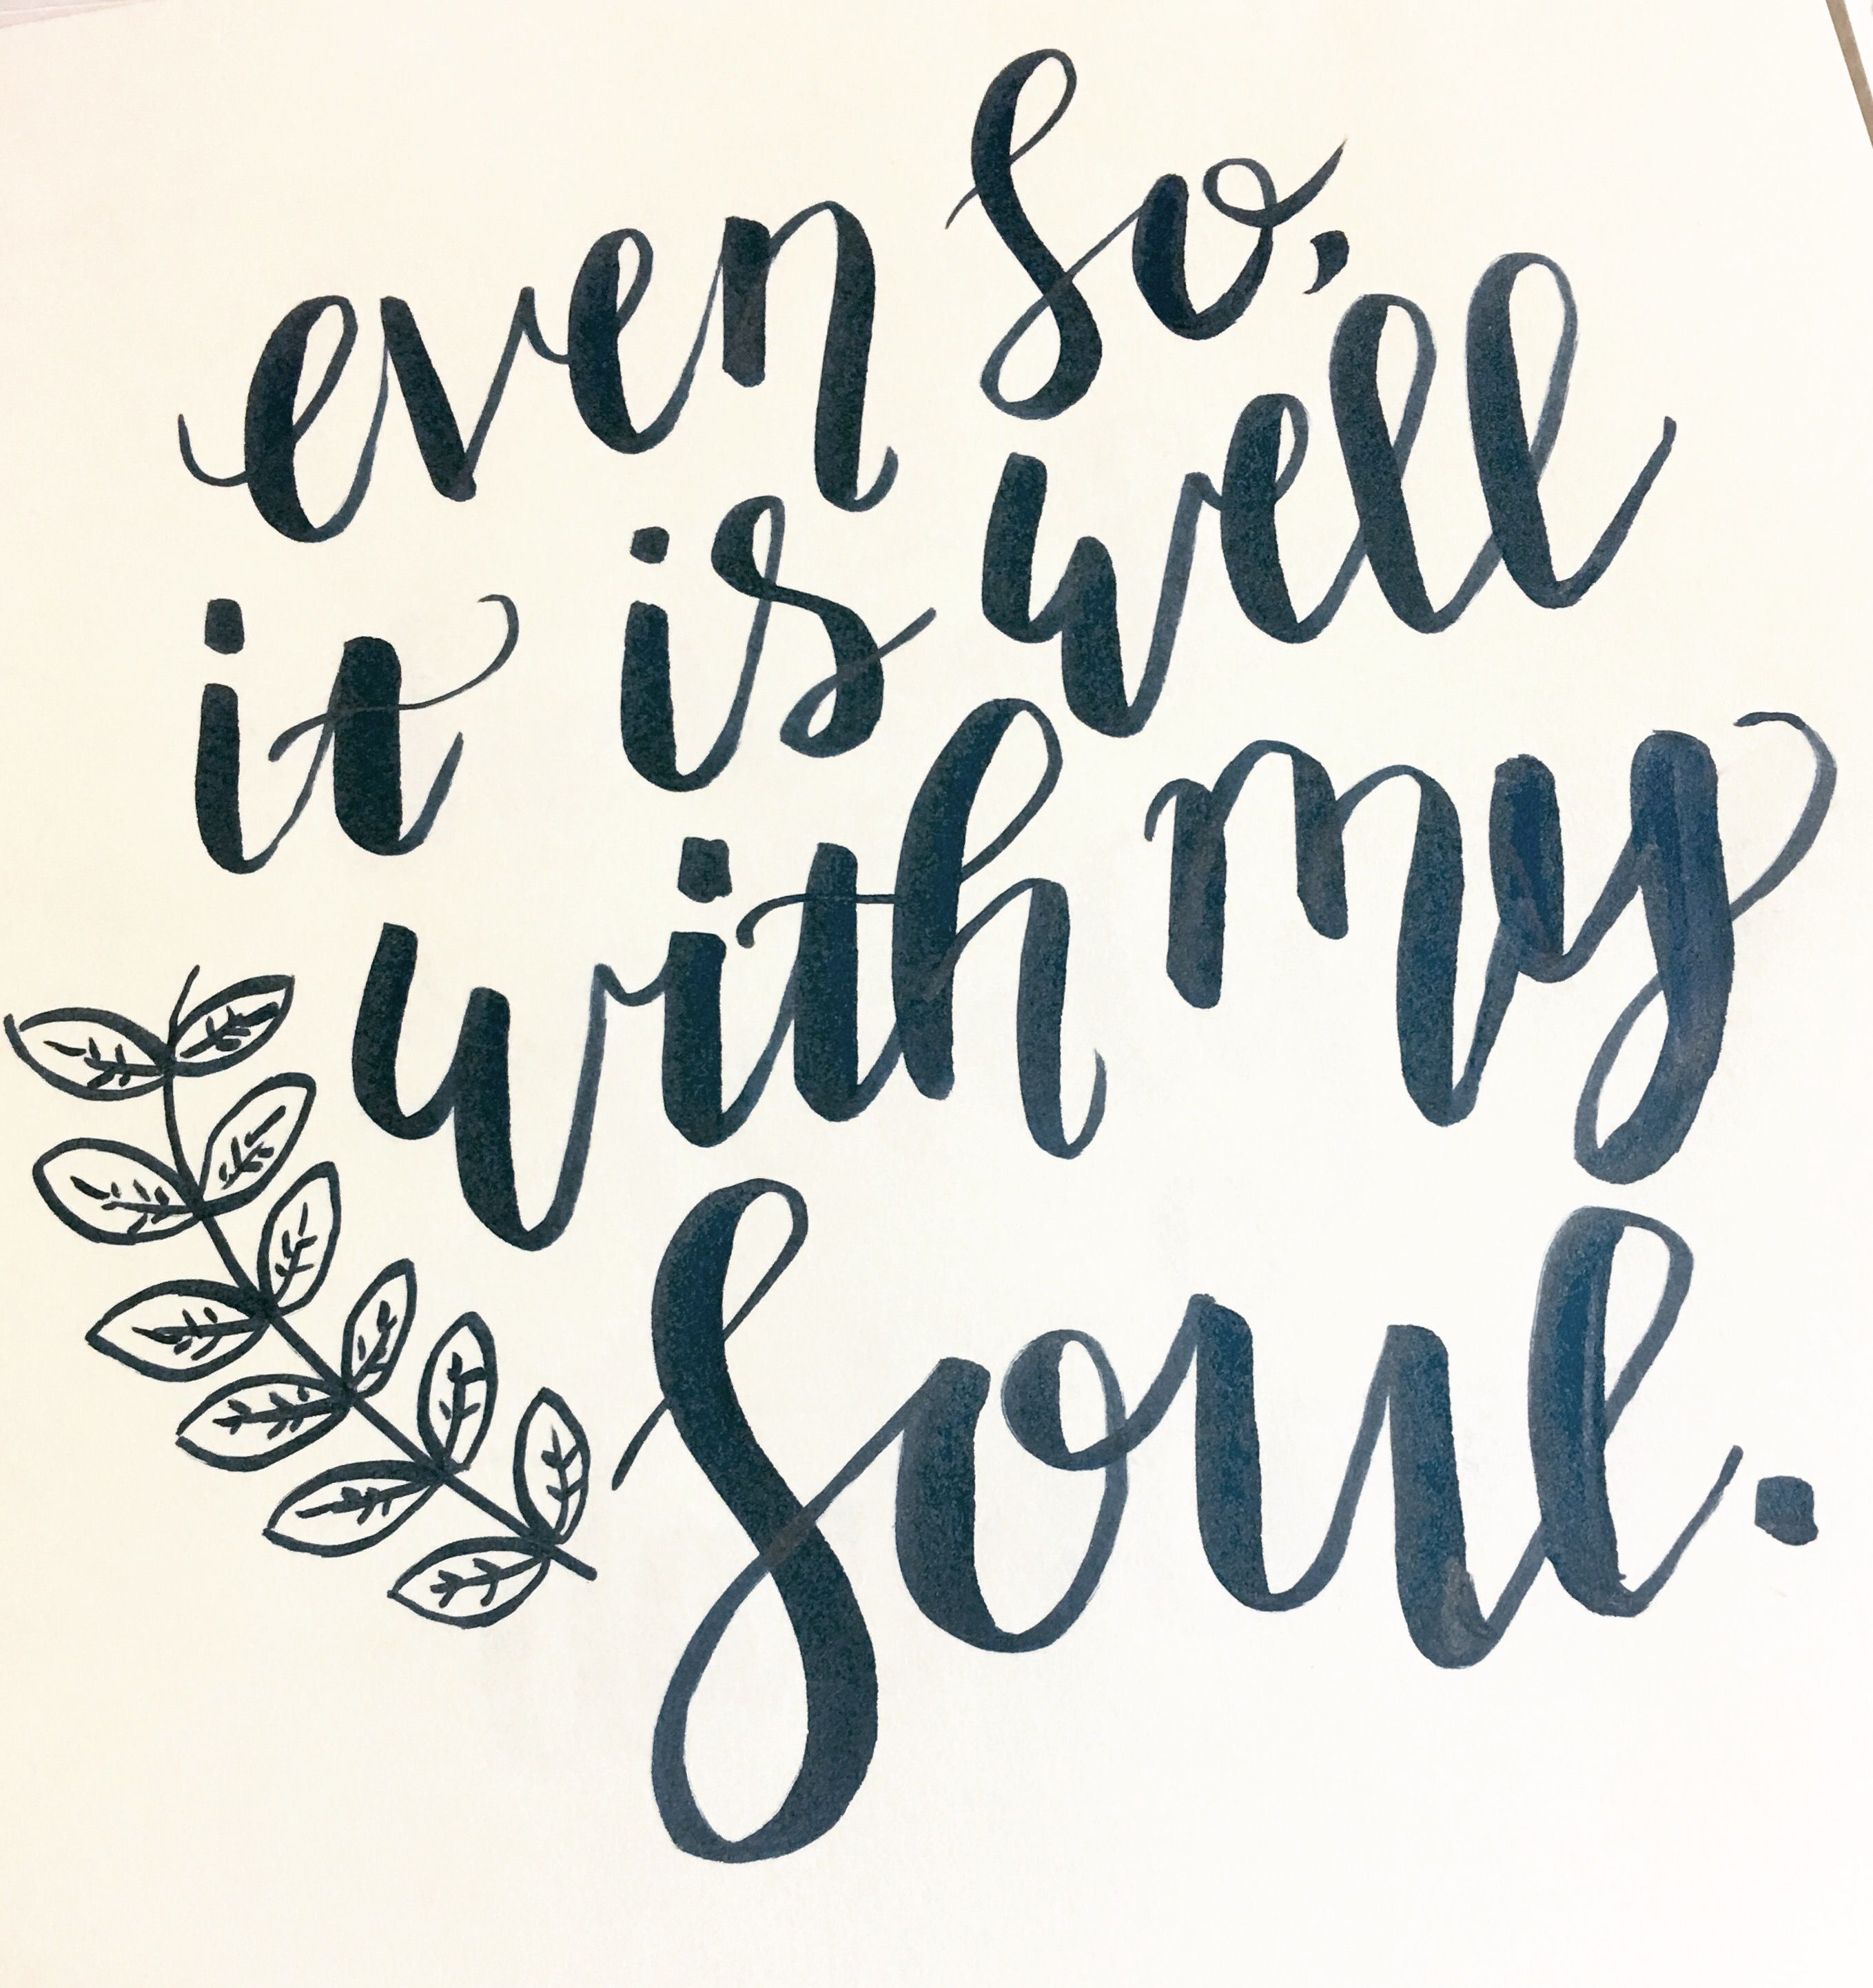 Even so it is well with my soul quotes